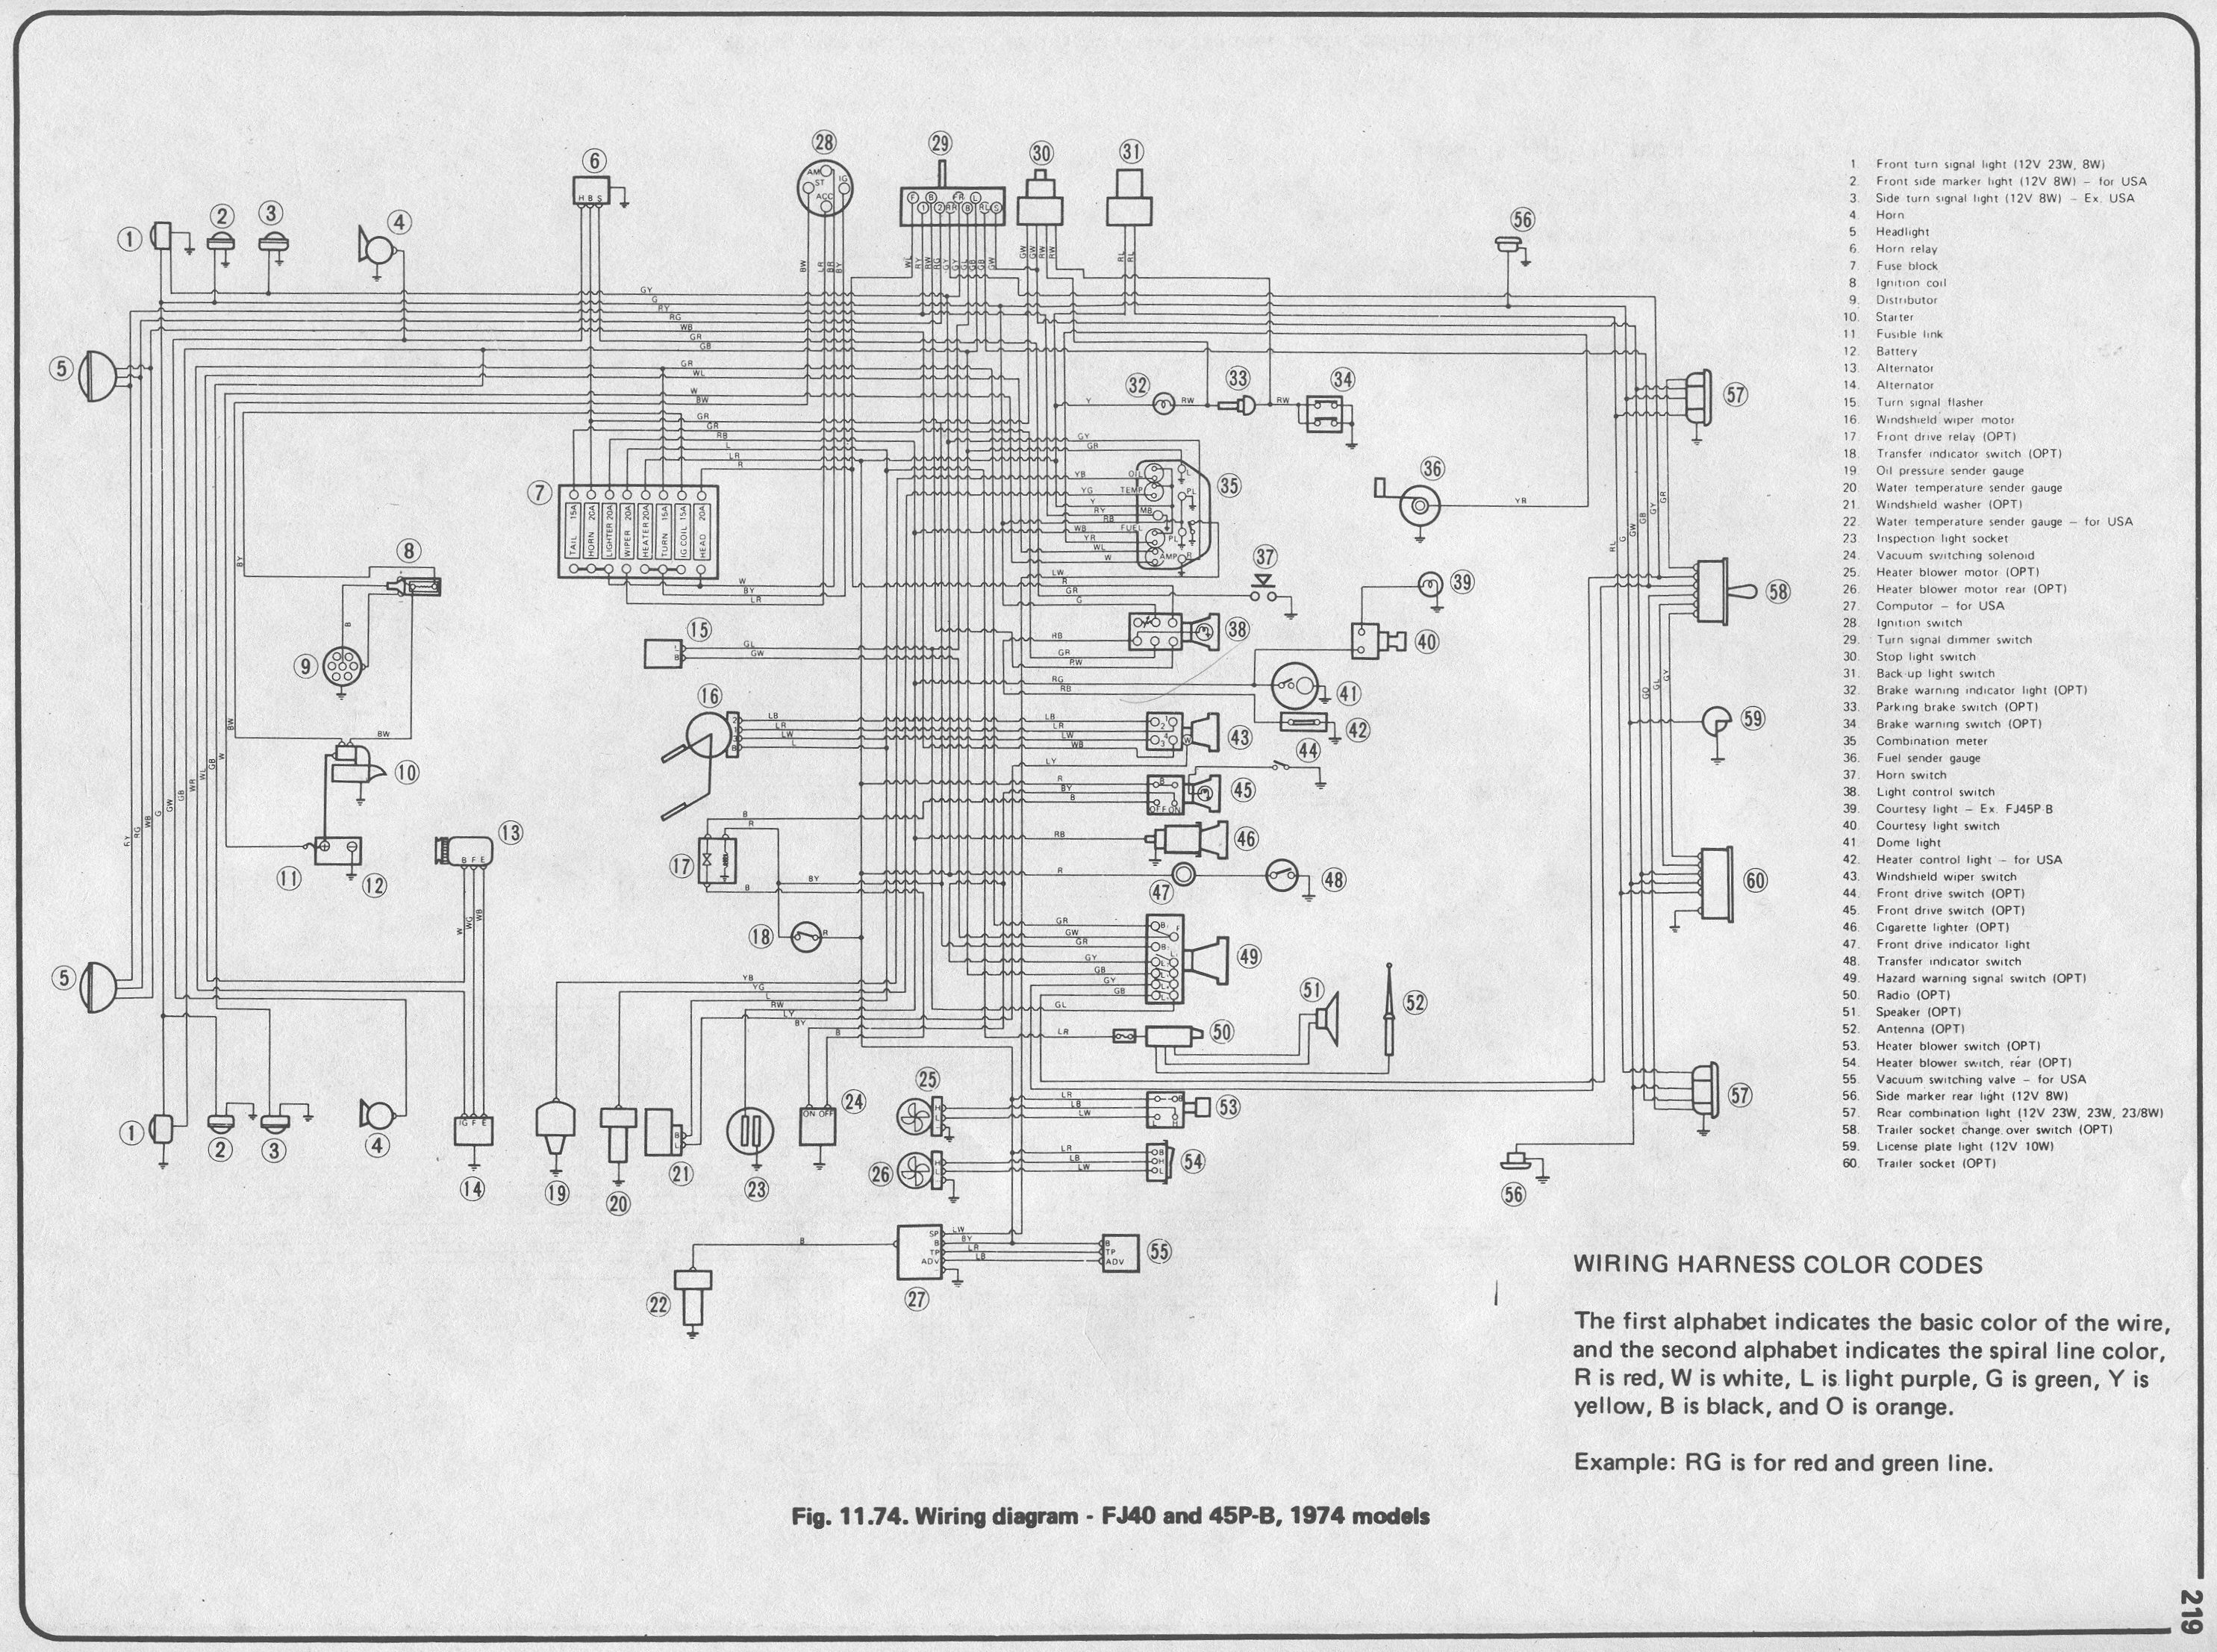 coolerman s electrical schematic and fsm file retrieval rh globalsoftware inc com 1984 Land Cruiser Wiring-Diagram 1997 Land Cruiser Computer Location